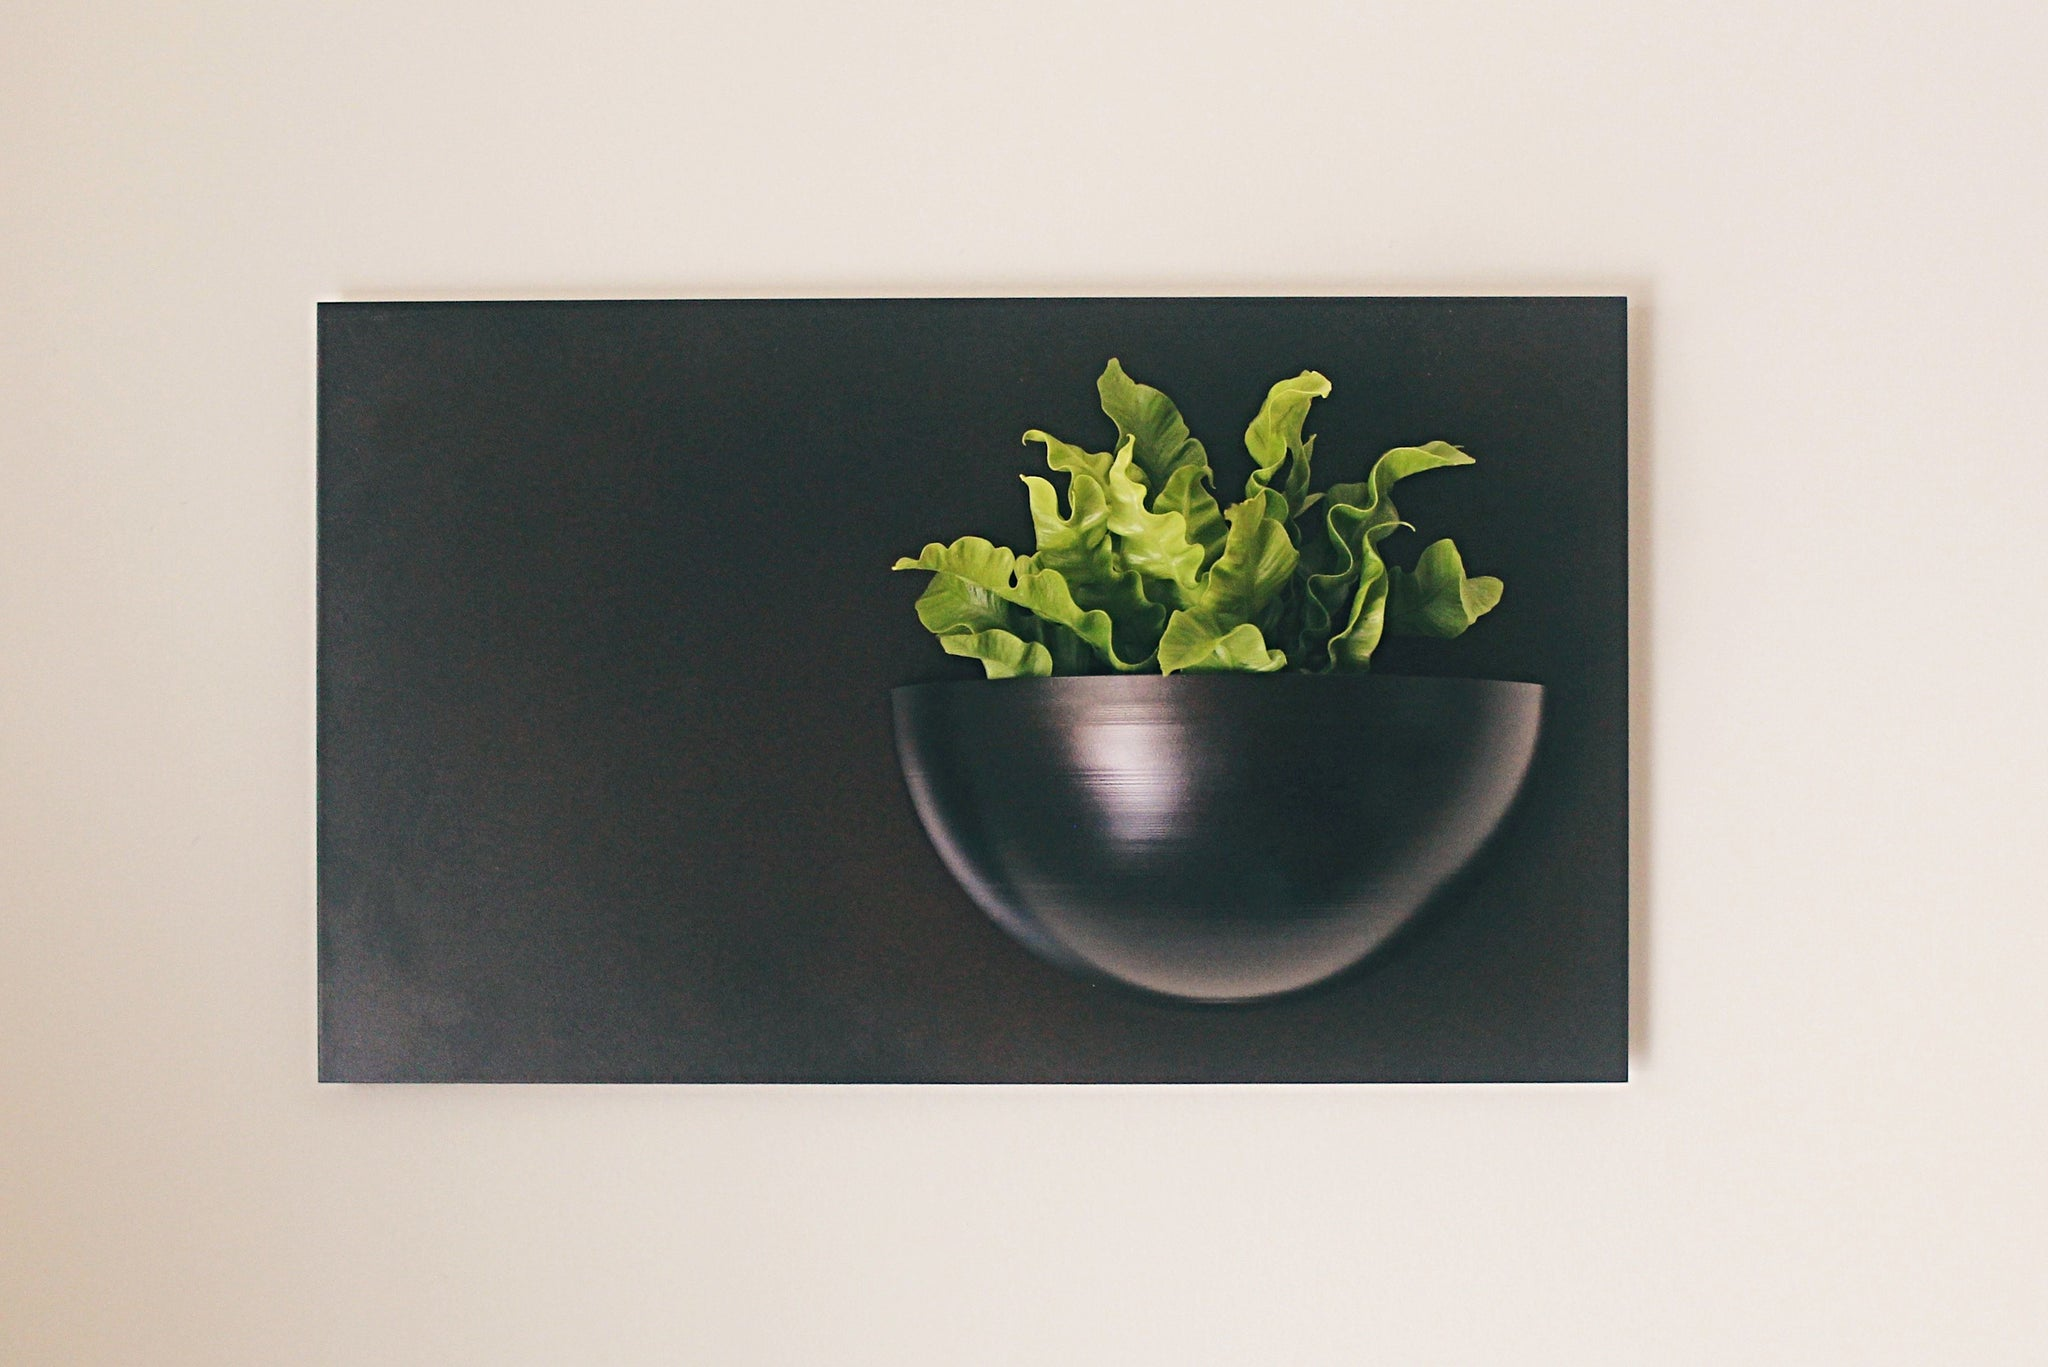 Horizontal Wall Mount Planter